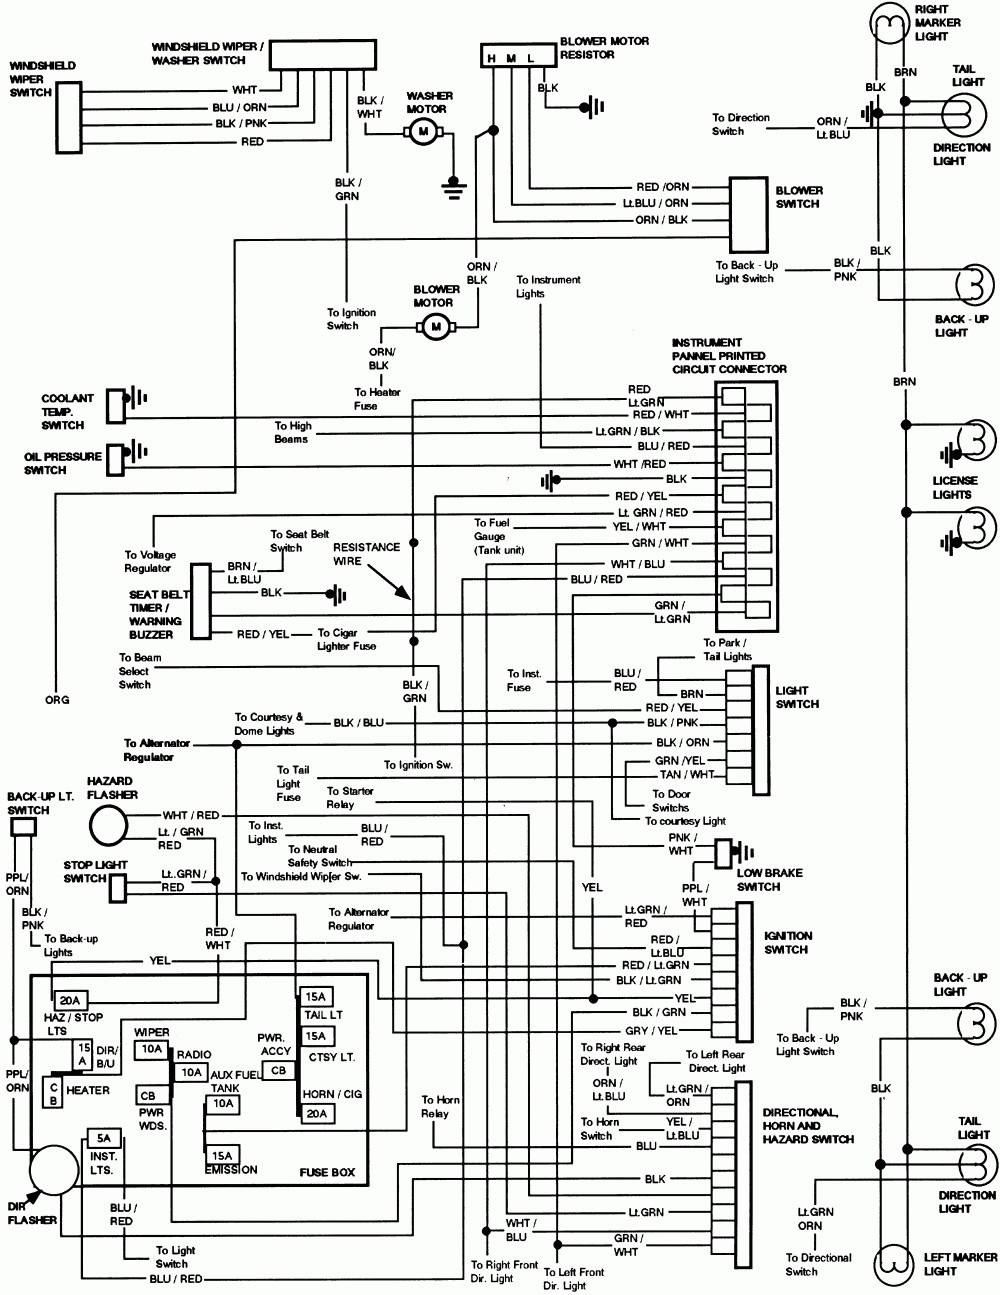 medium resolution of ford f250 wiring diagrams wiring diagram article review 89 ford f250 radio wiring diagram 89 f250